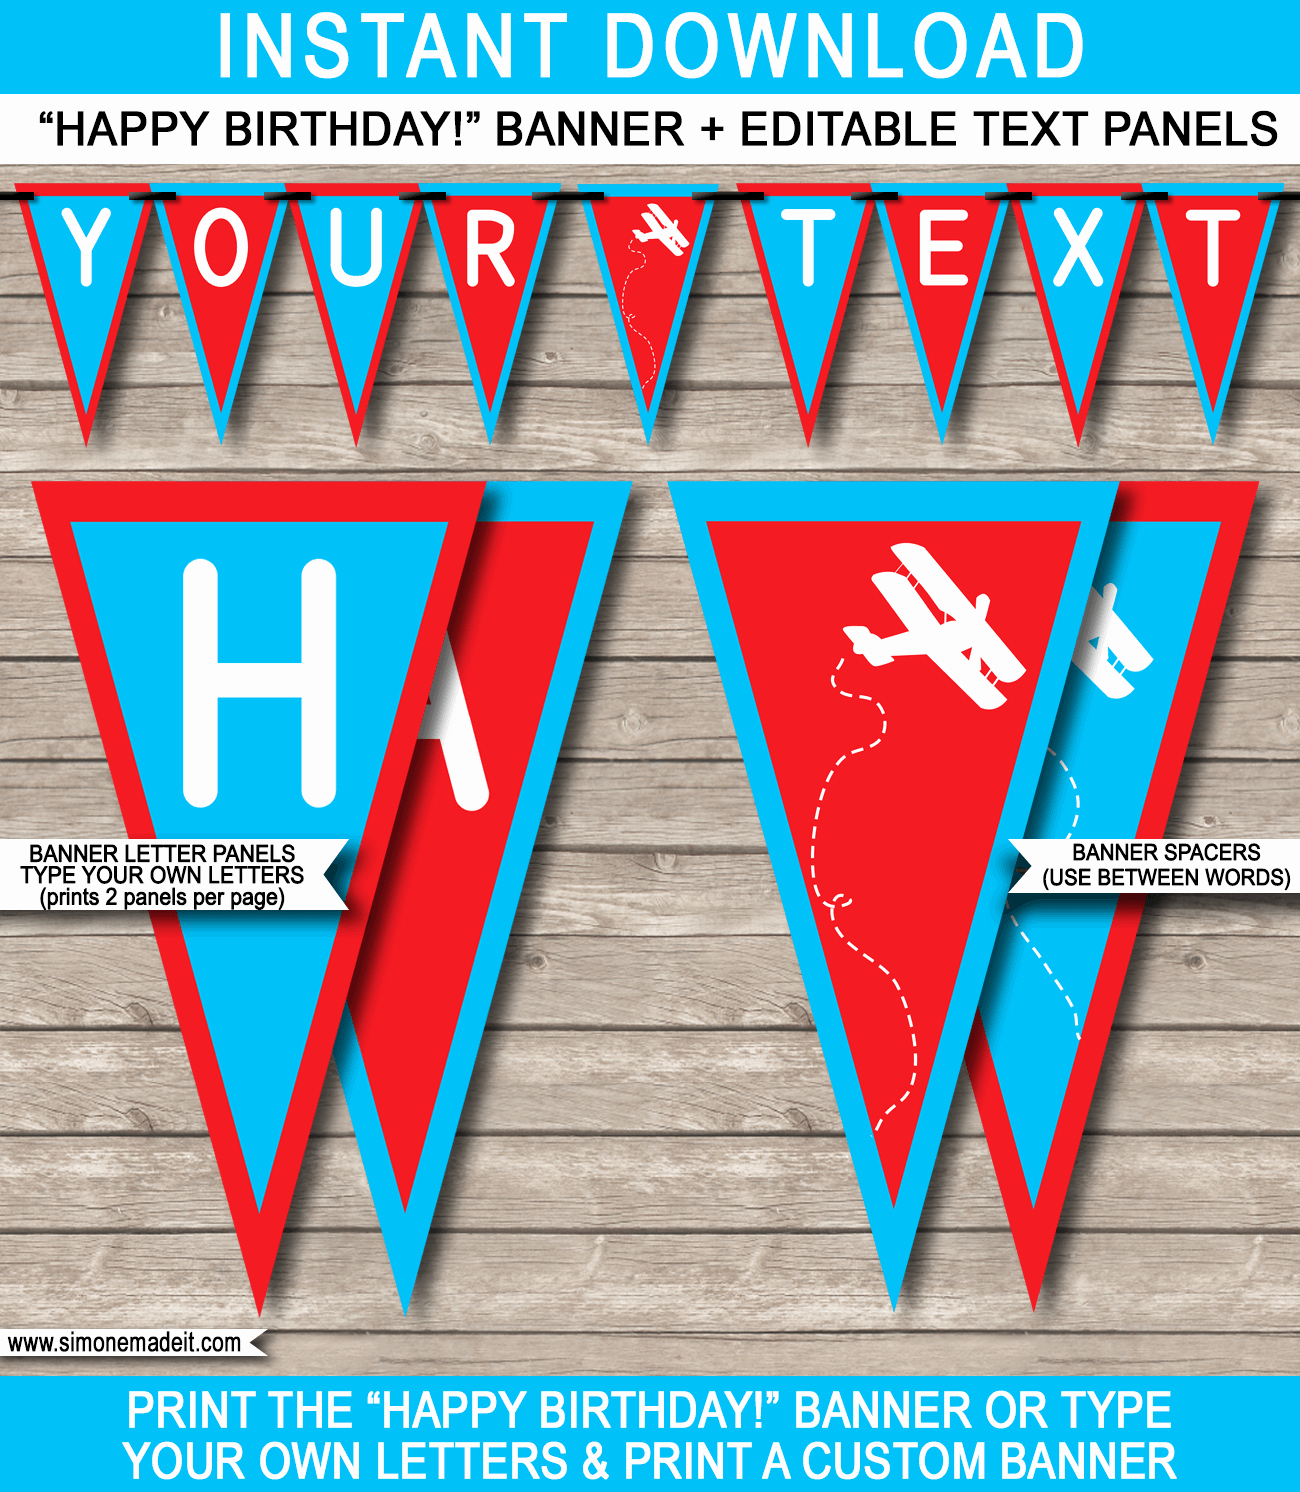 Happy Birthday Banner Template Printable Unique Airplane Birthday Party Banner Template